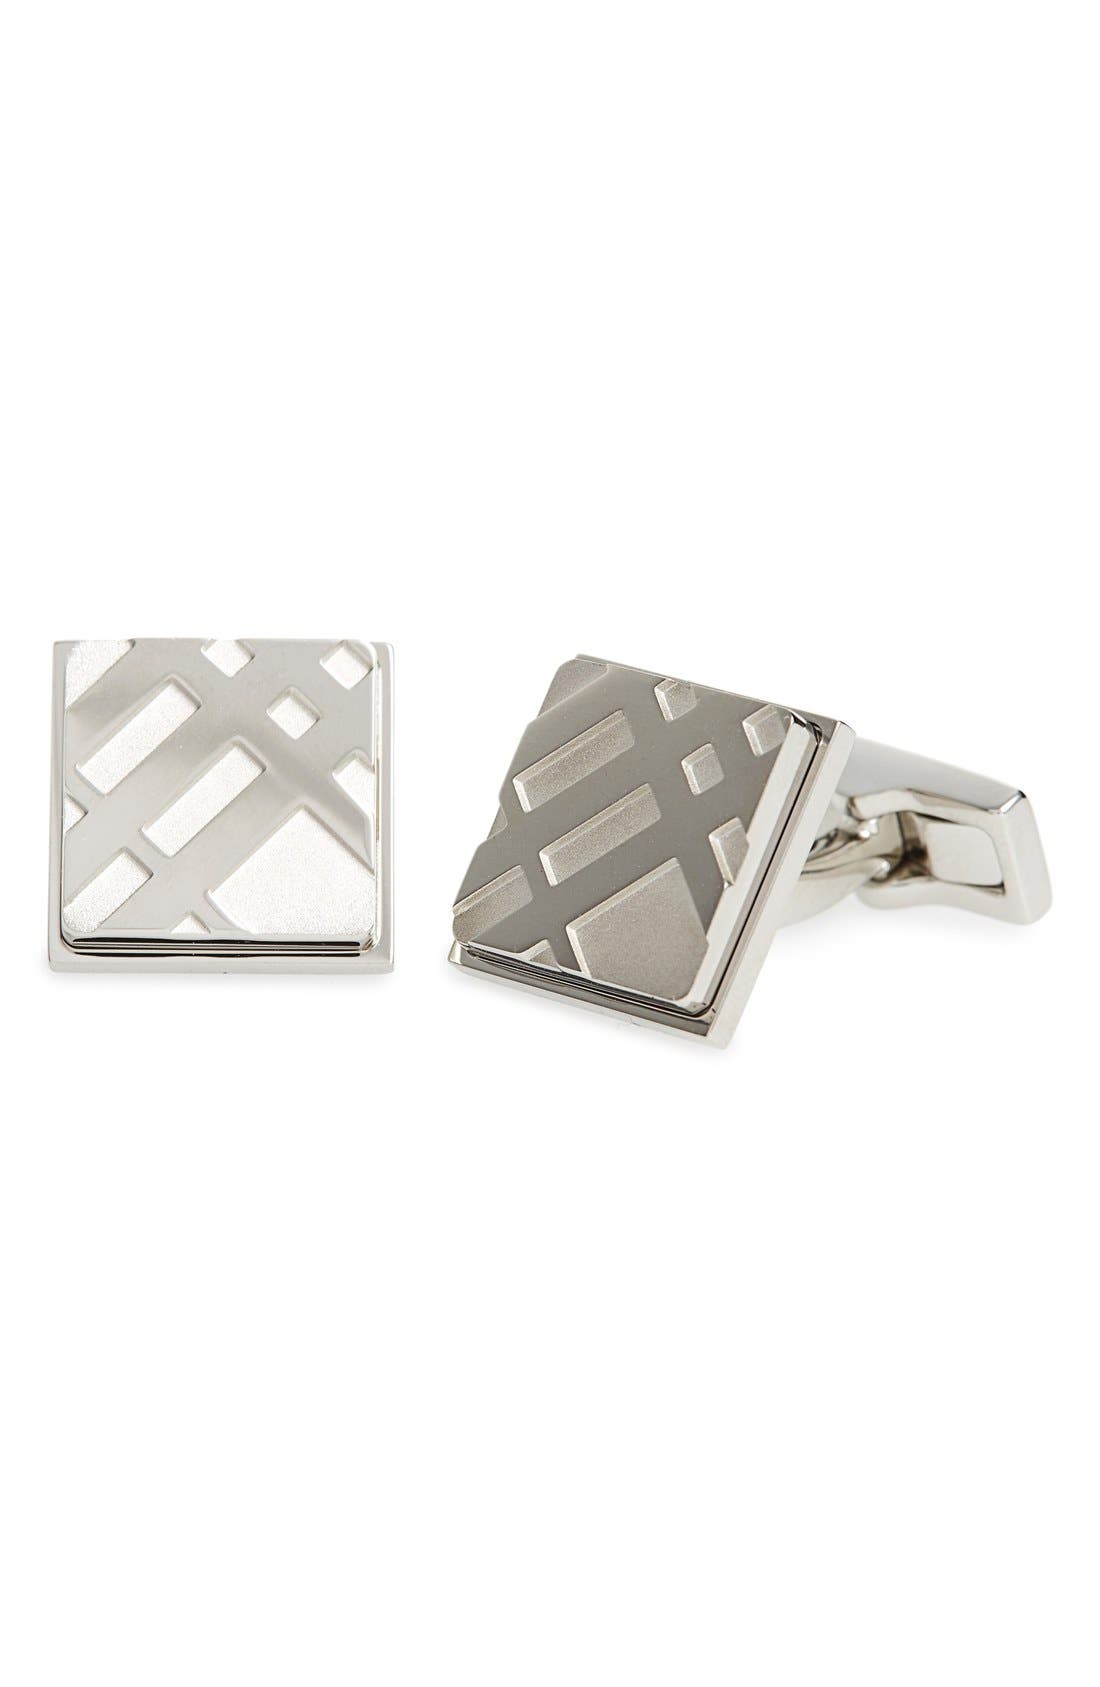 Alternate Image 1 Selected - Burberry Square Cuff Links